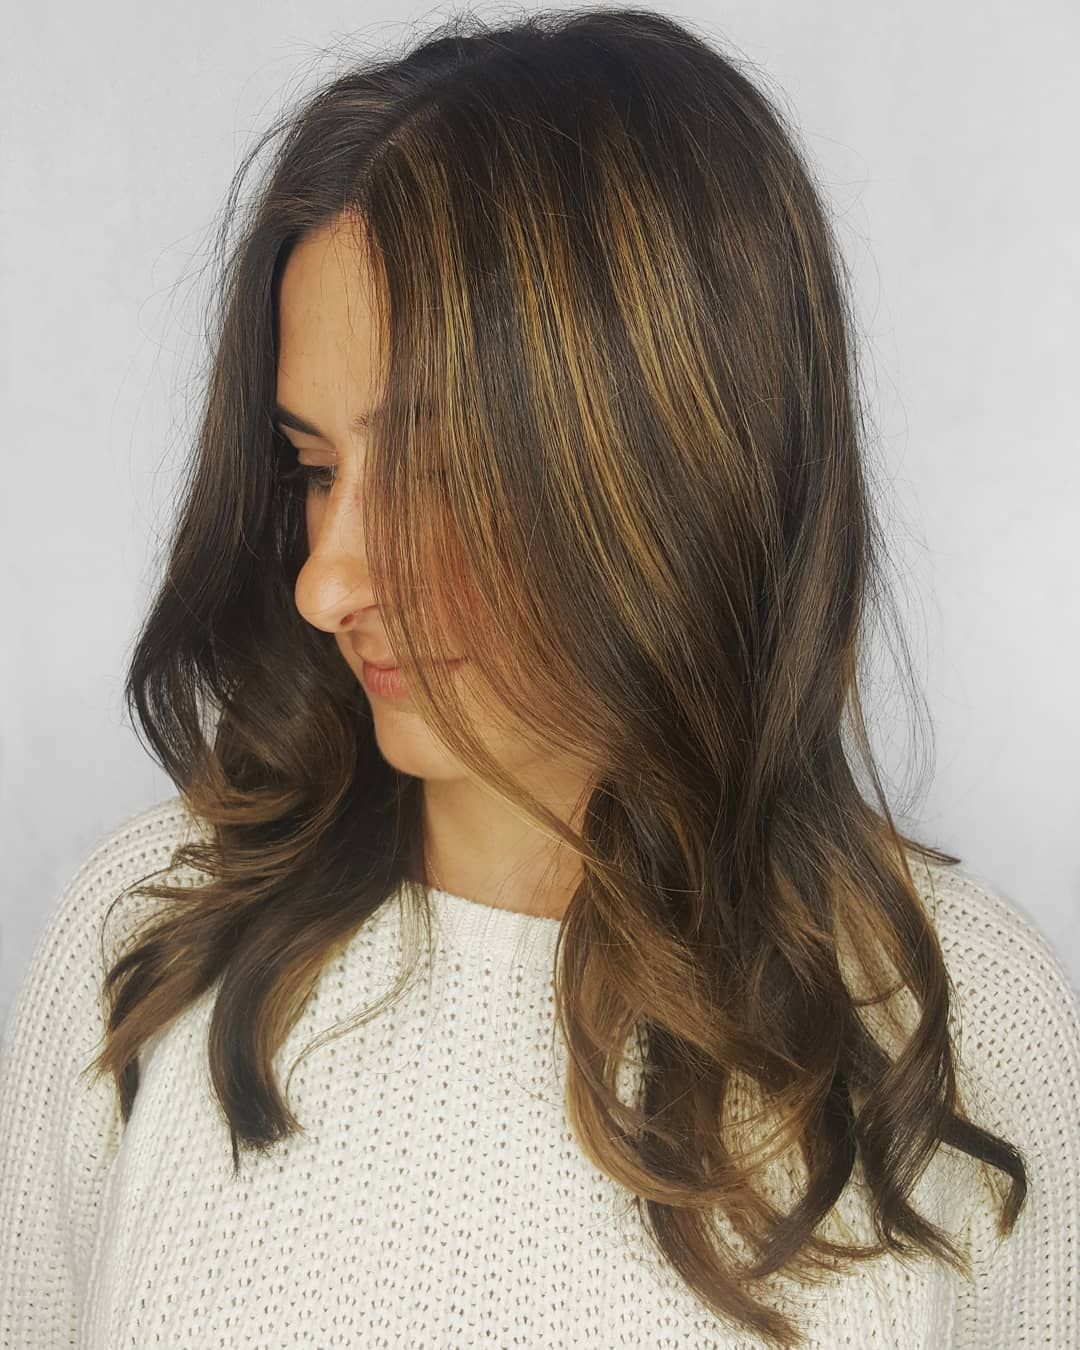 Living For That Blend Hair By June 1313 A Salon In Boulder Balayage Hair Long Hair Styles Hair Styles